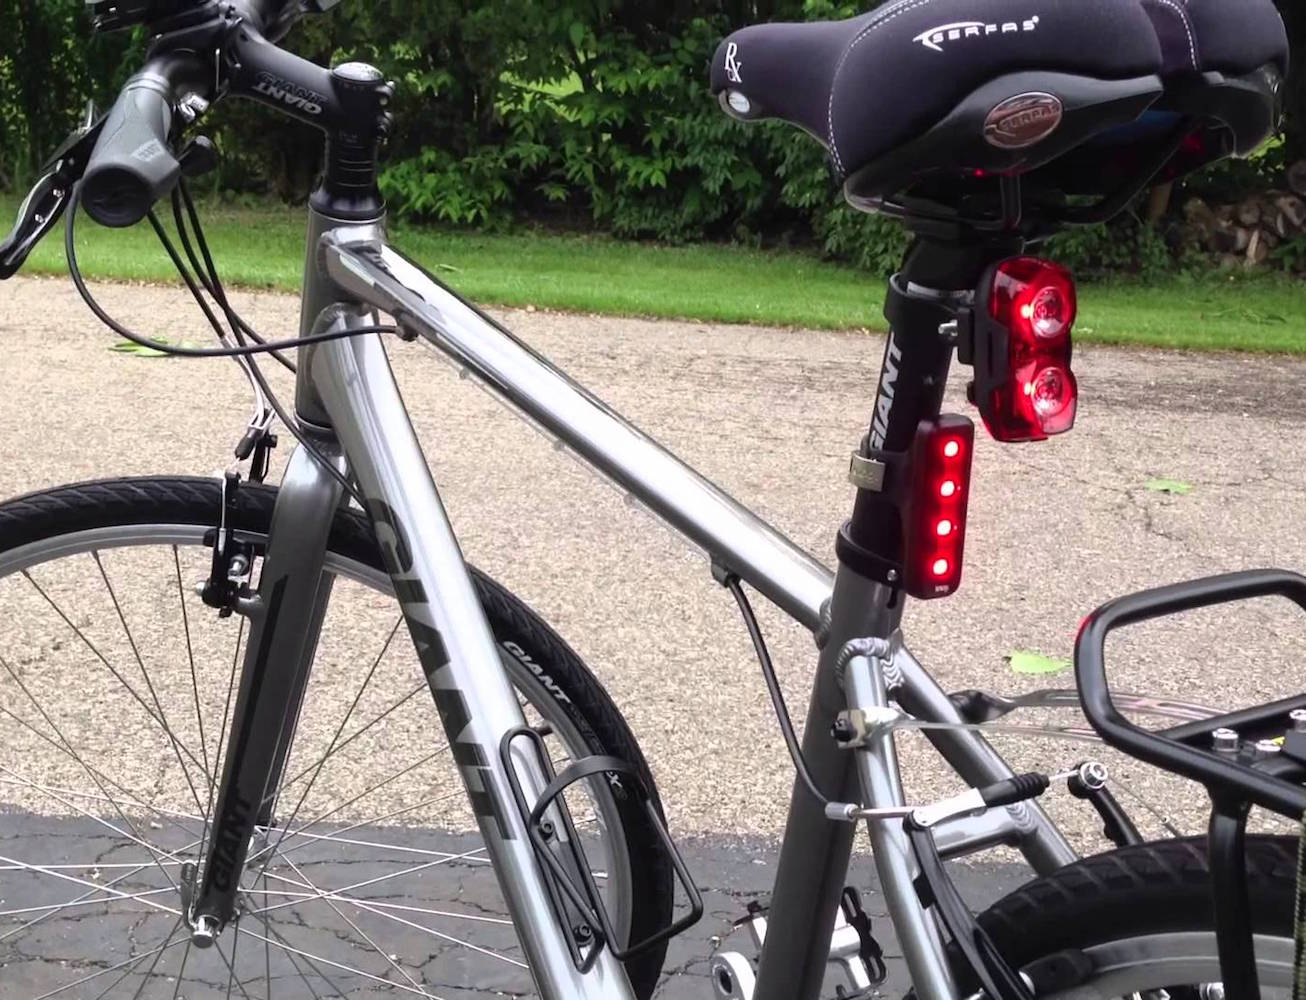 Knog Blinder 4V USB Rechargeable Bike Light